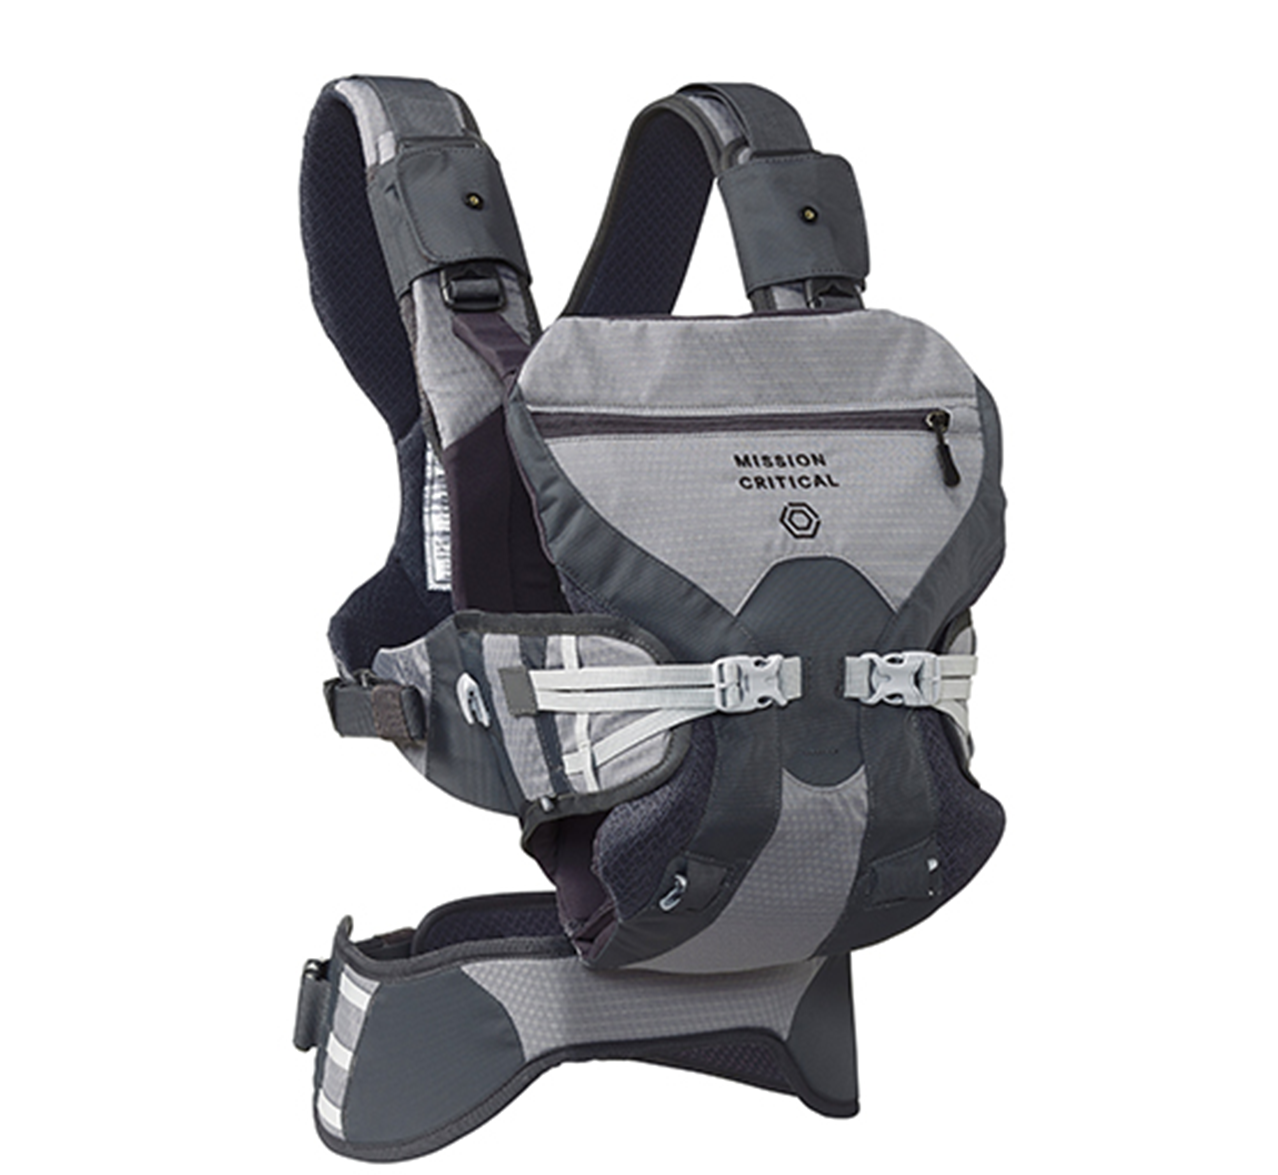 S.02 Baby Carrier Features - Rover Kit - Mission Critical